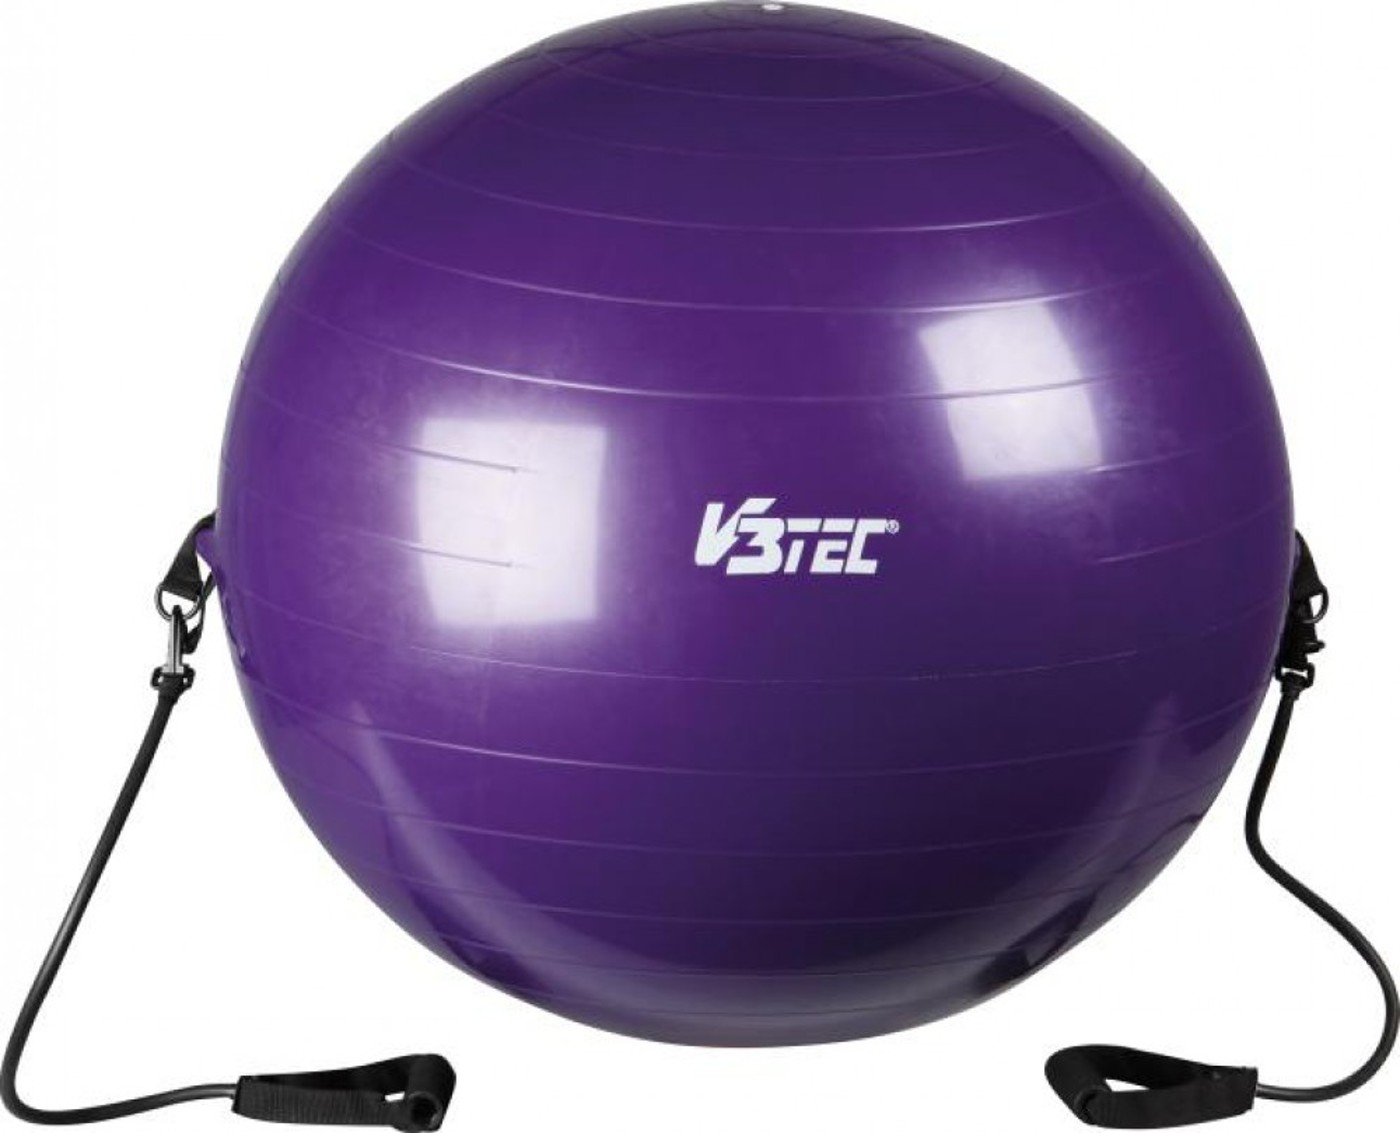 V3TEC GYM BALL WITH TUBES